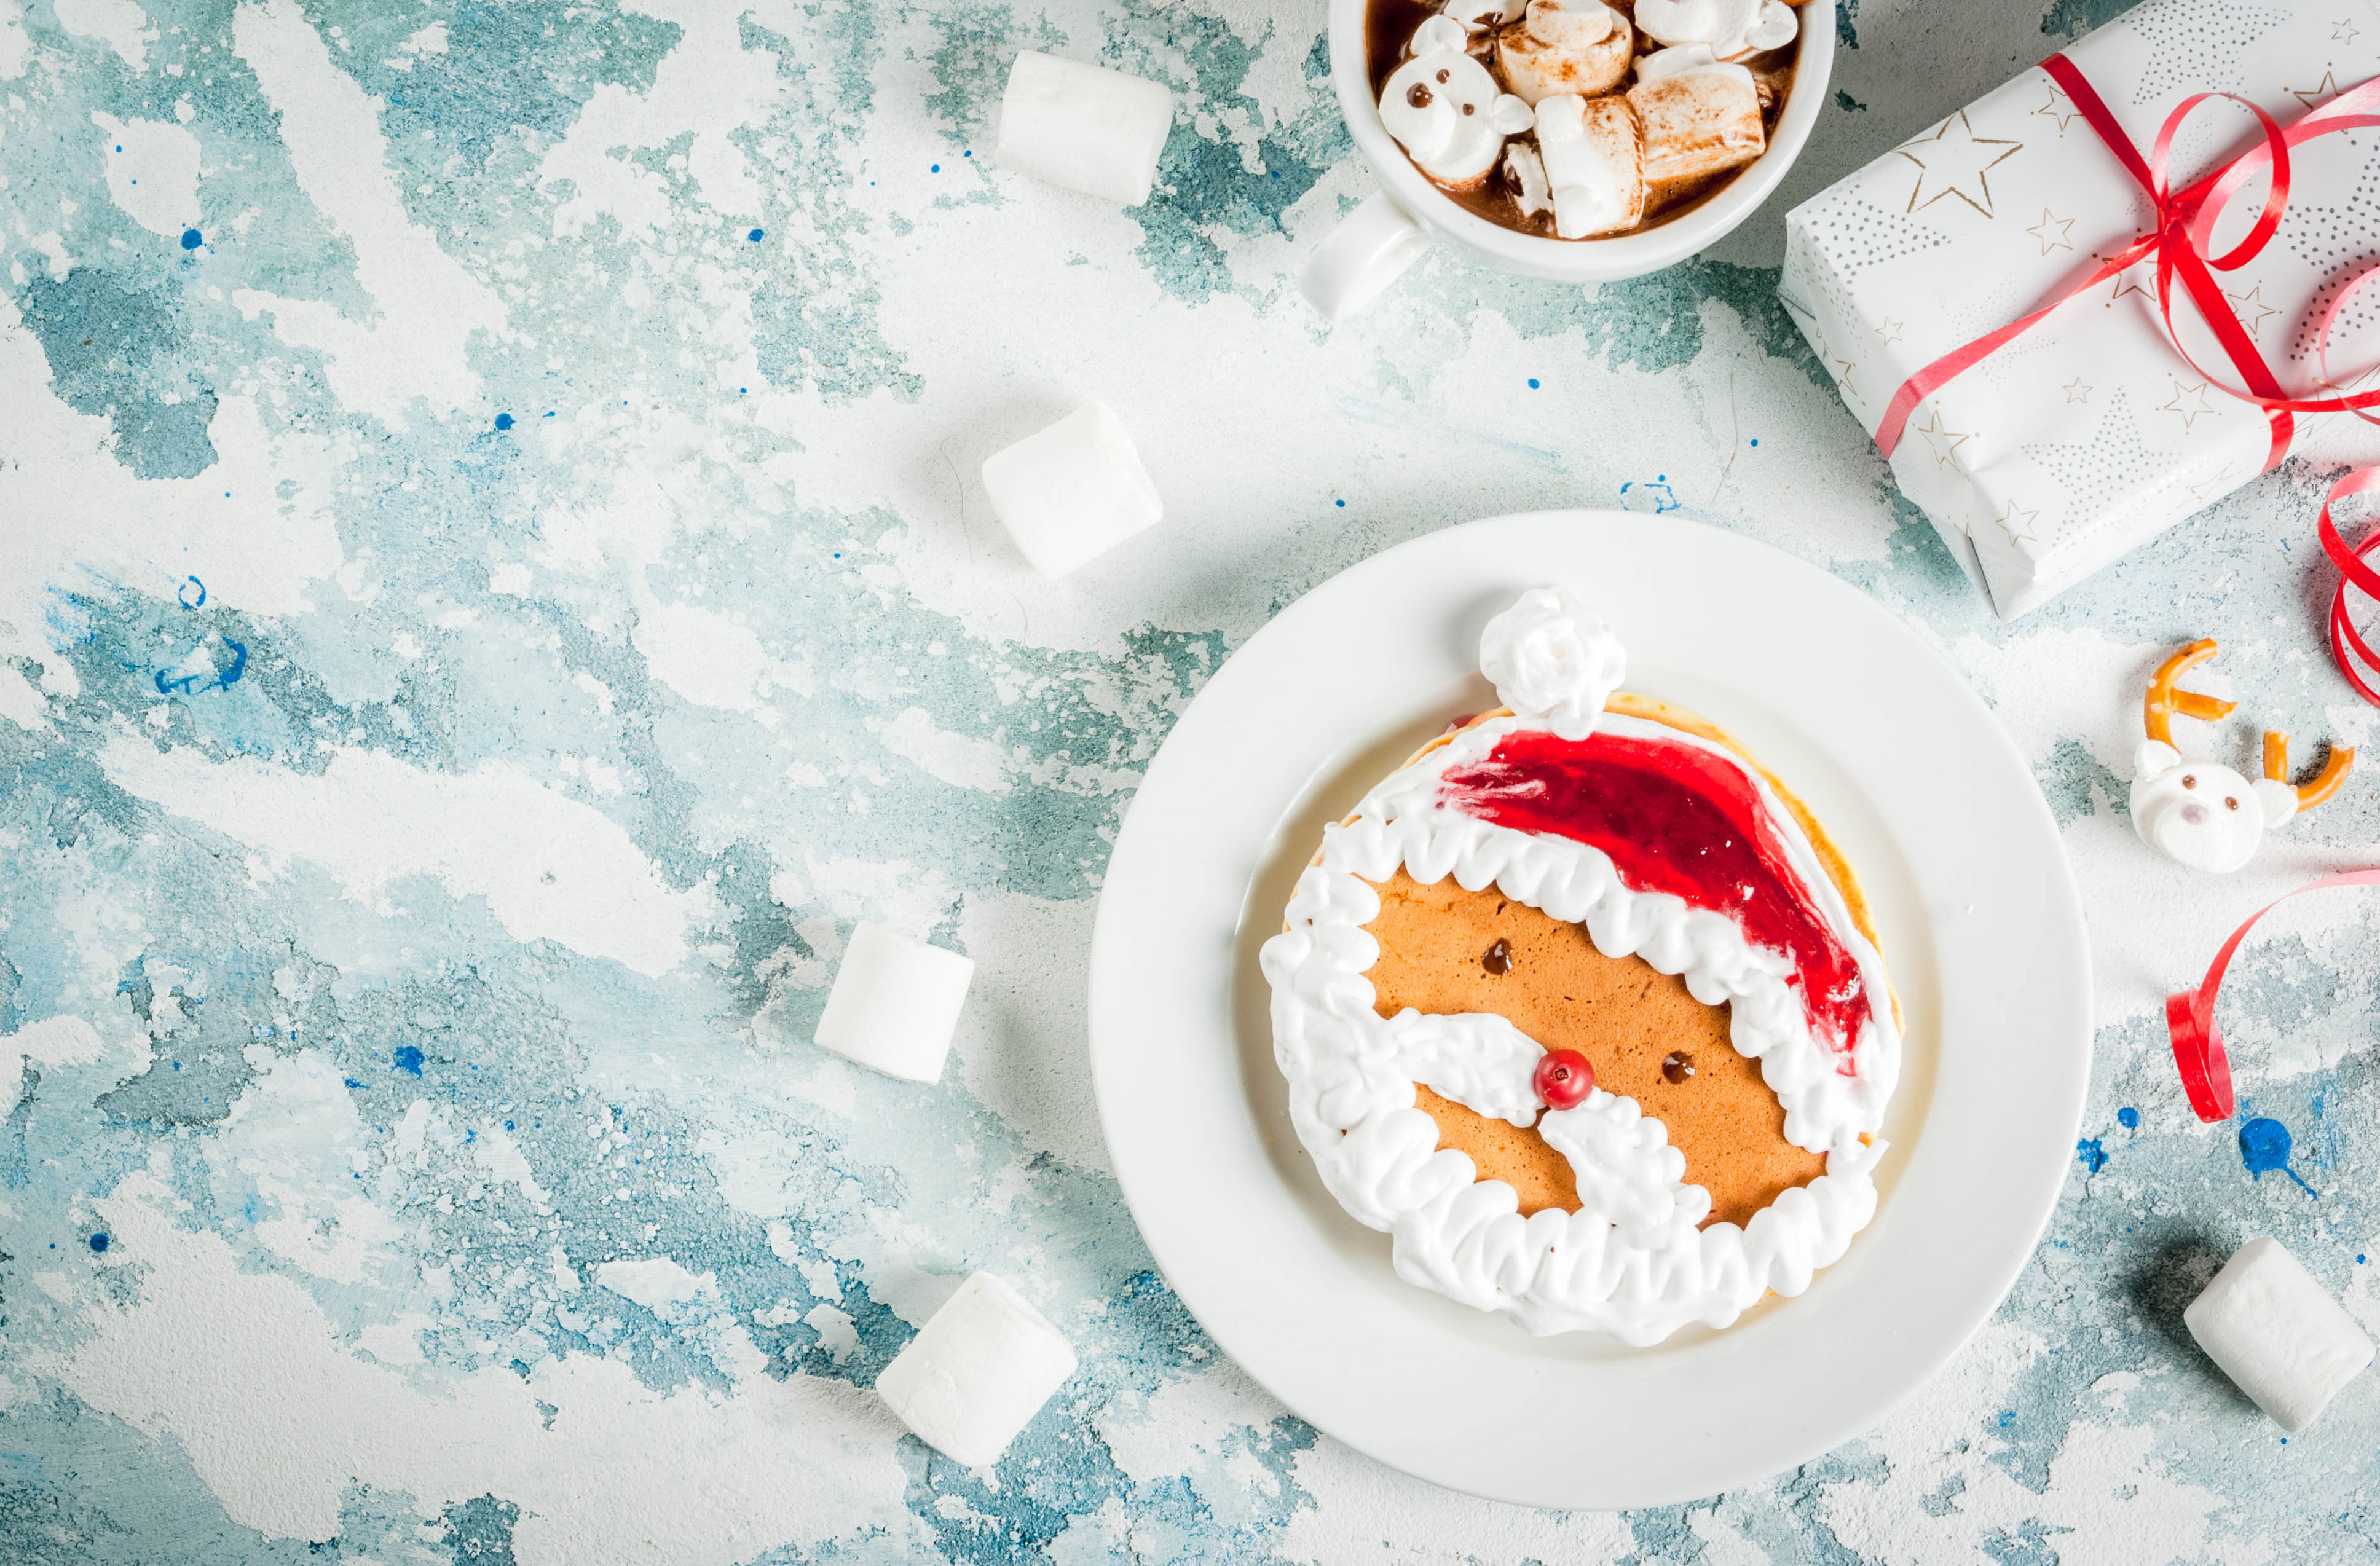 How to make your own North Pole Christmas breakfast